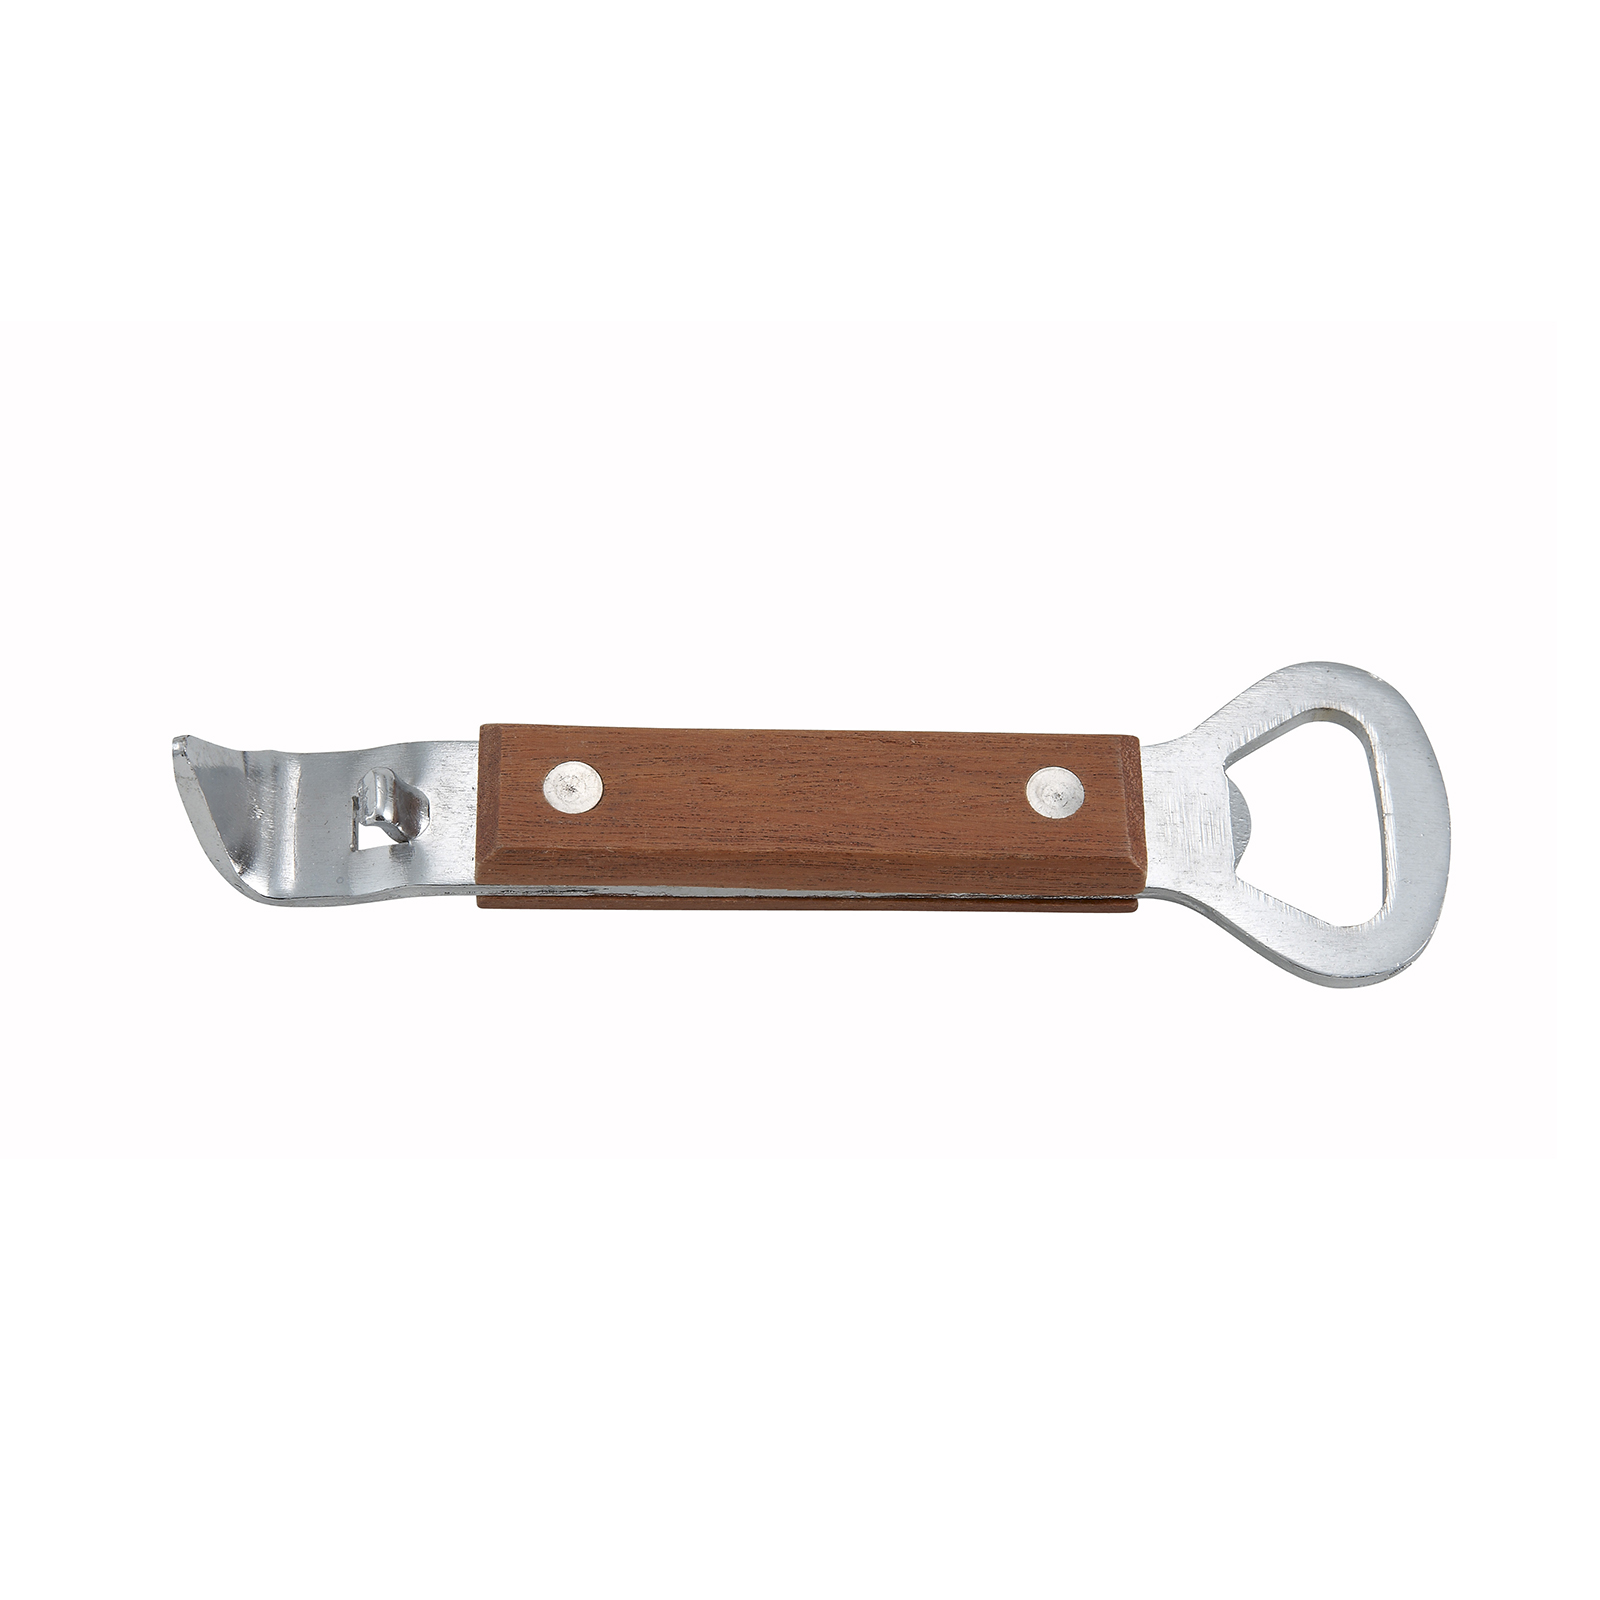 Winco CO-303 bottle opener can punch